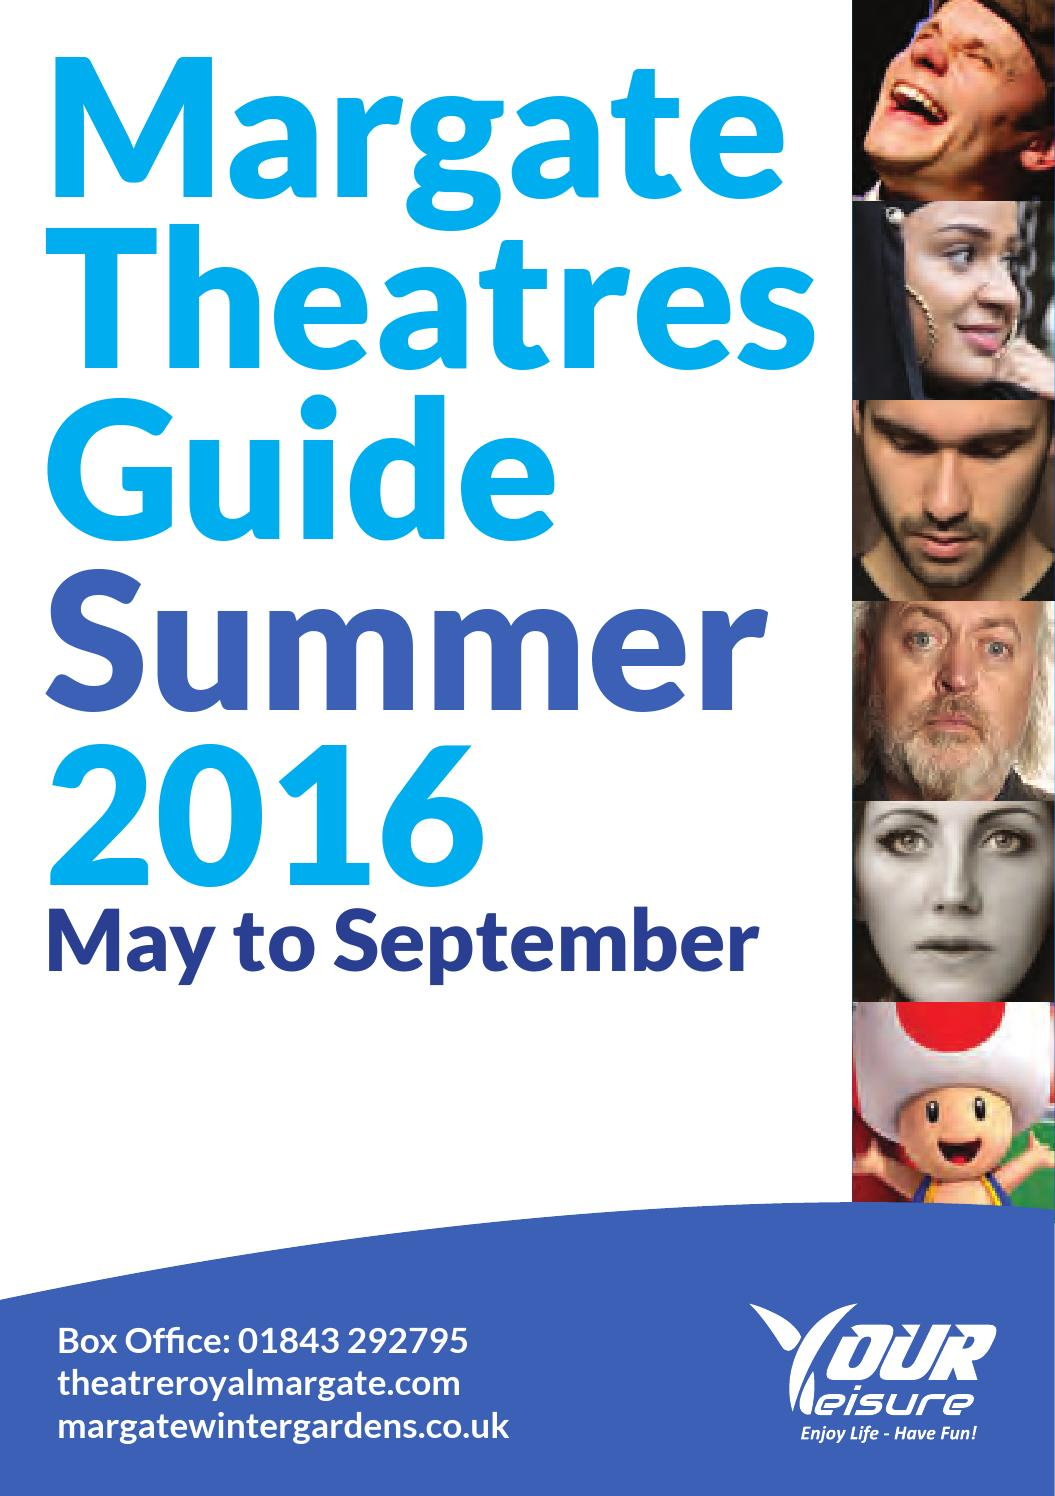 margate theatres summer brochure 2016 by yourleisure issuu